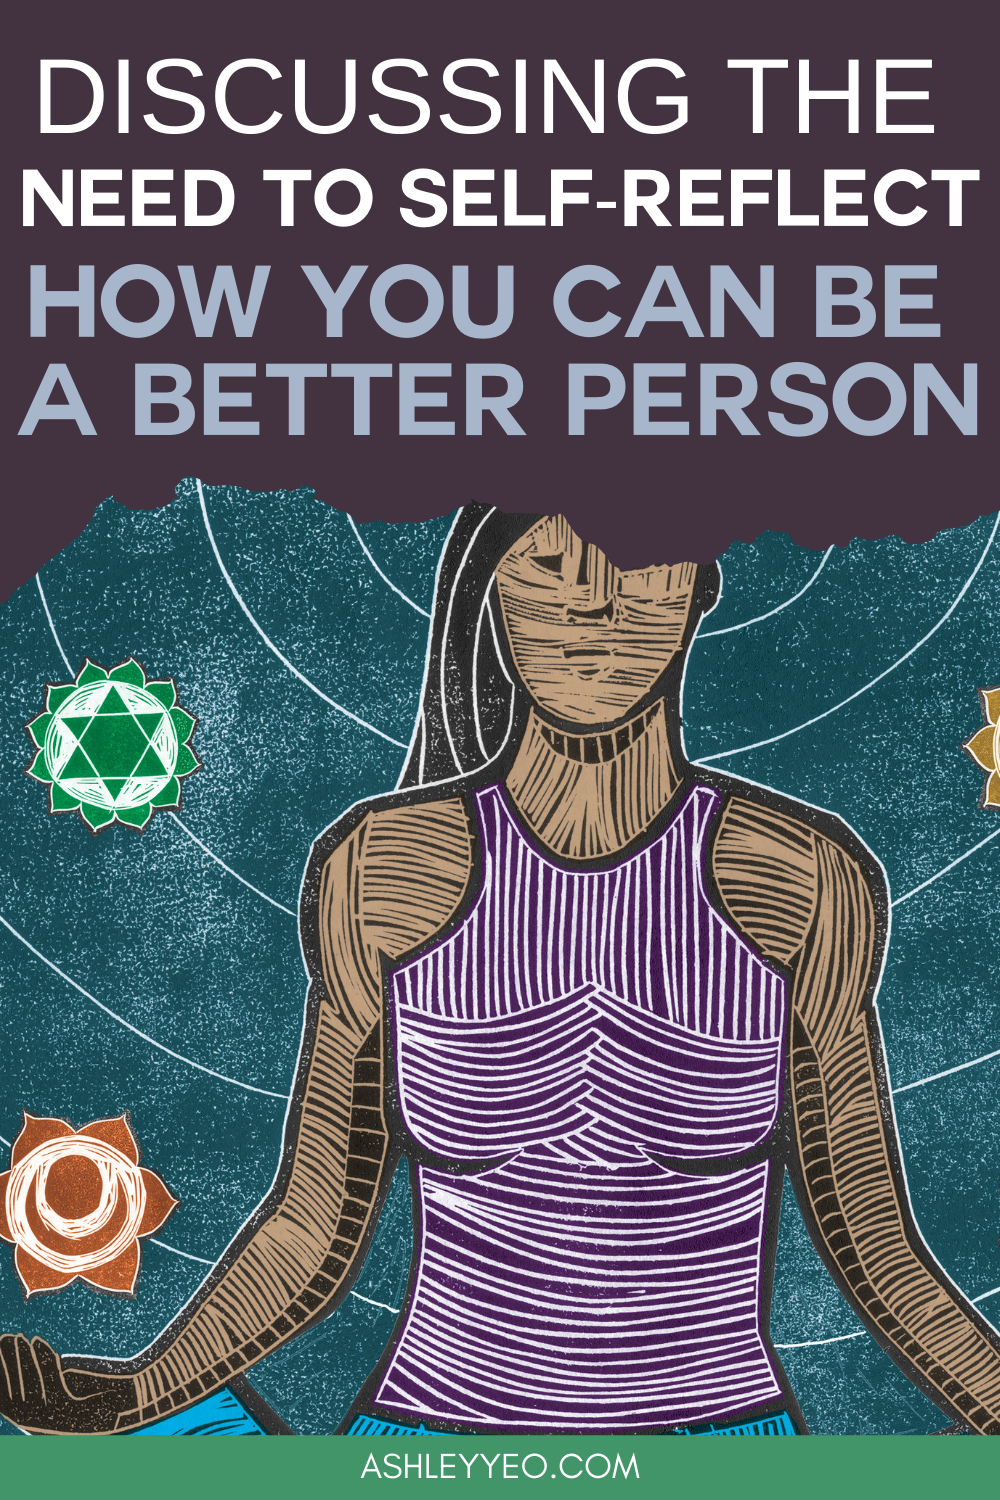 Discussing the Need to Self-Reflect: How You Can Be a Better Person